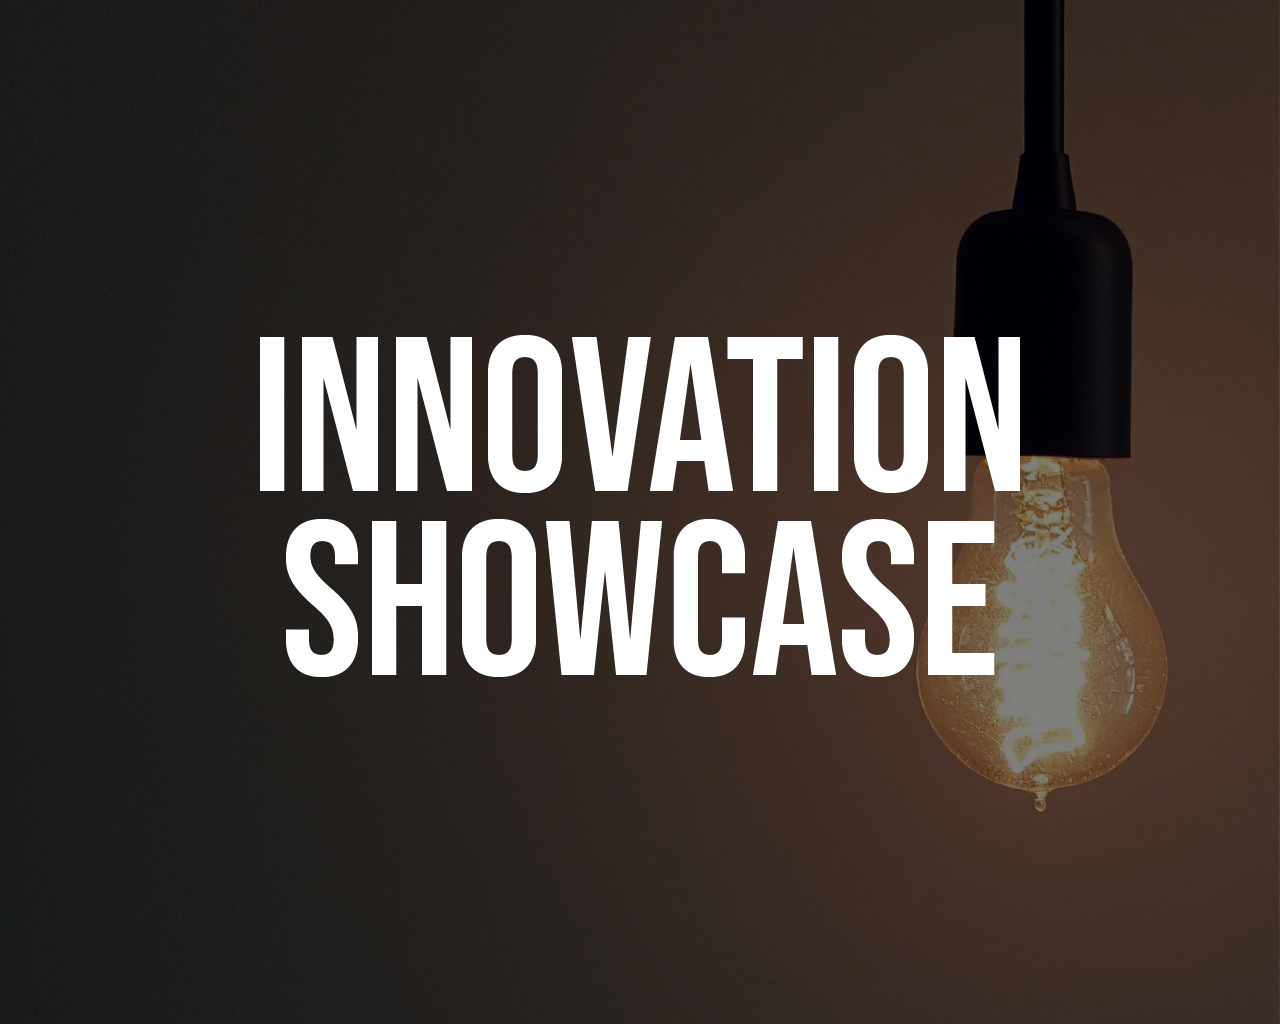 ISSCR 2020 Innovation Showcase